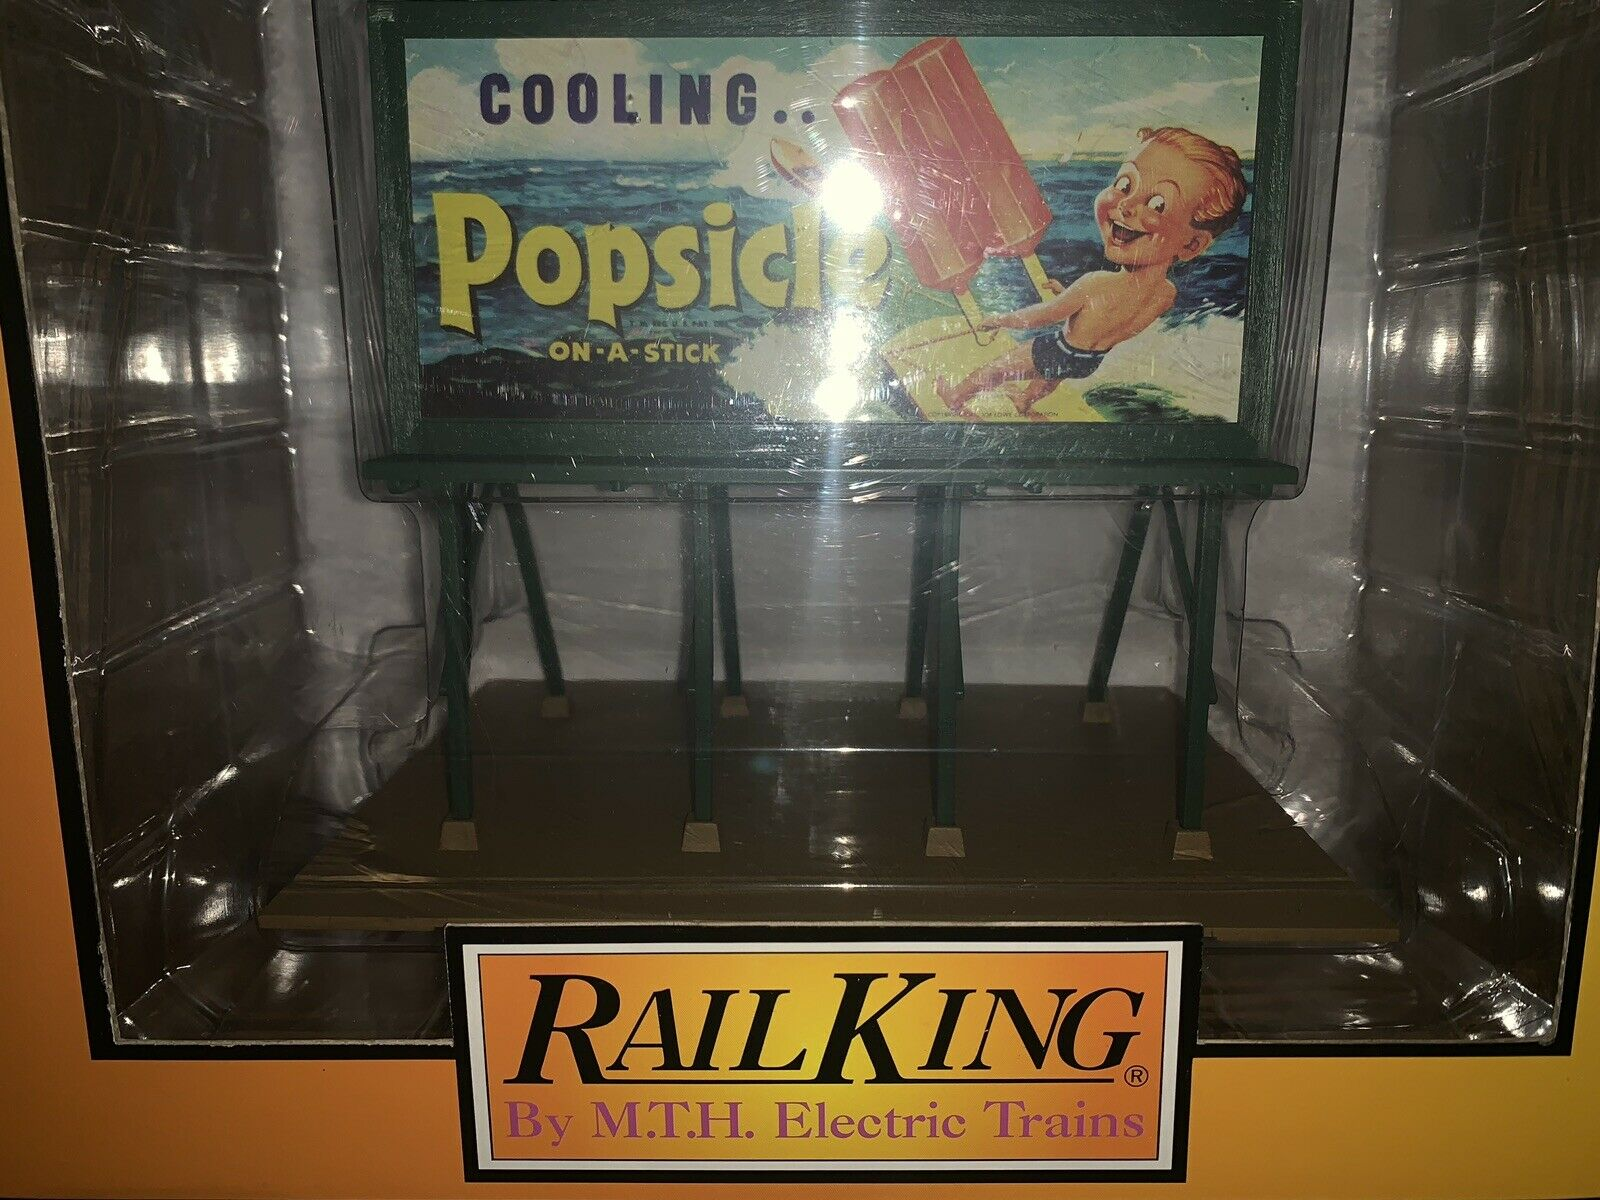 ✅MTH RAILKING POPSICLE LIGHTED BILLBOARD ACCESSORY NEW  FITS LIONEL K-LINE TRAIN